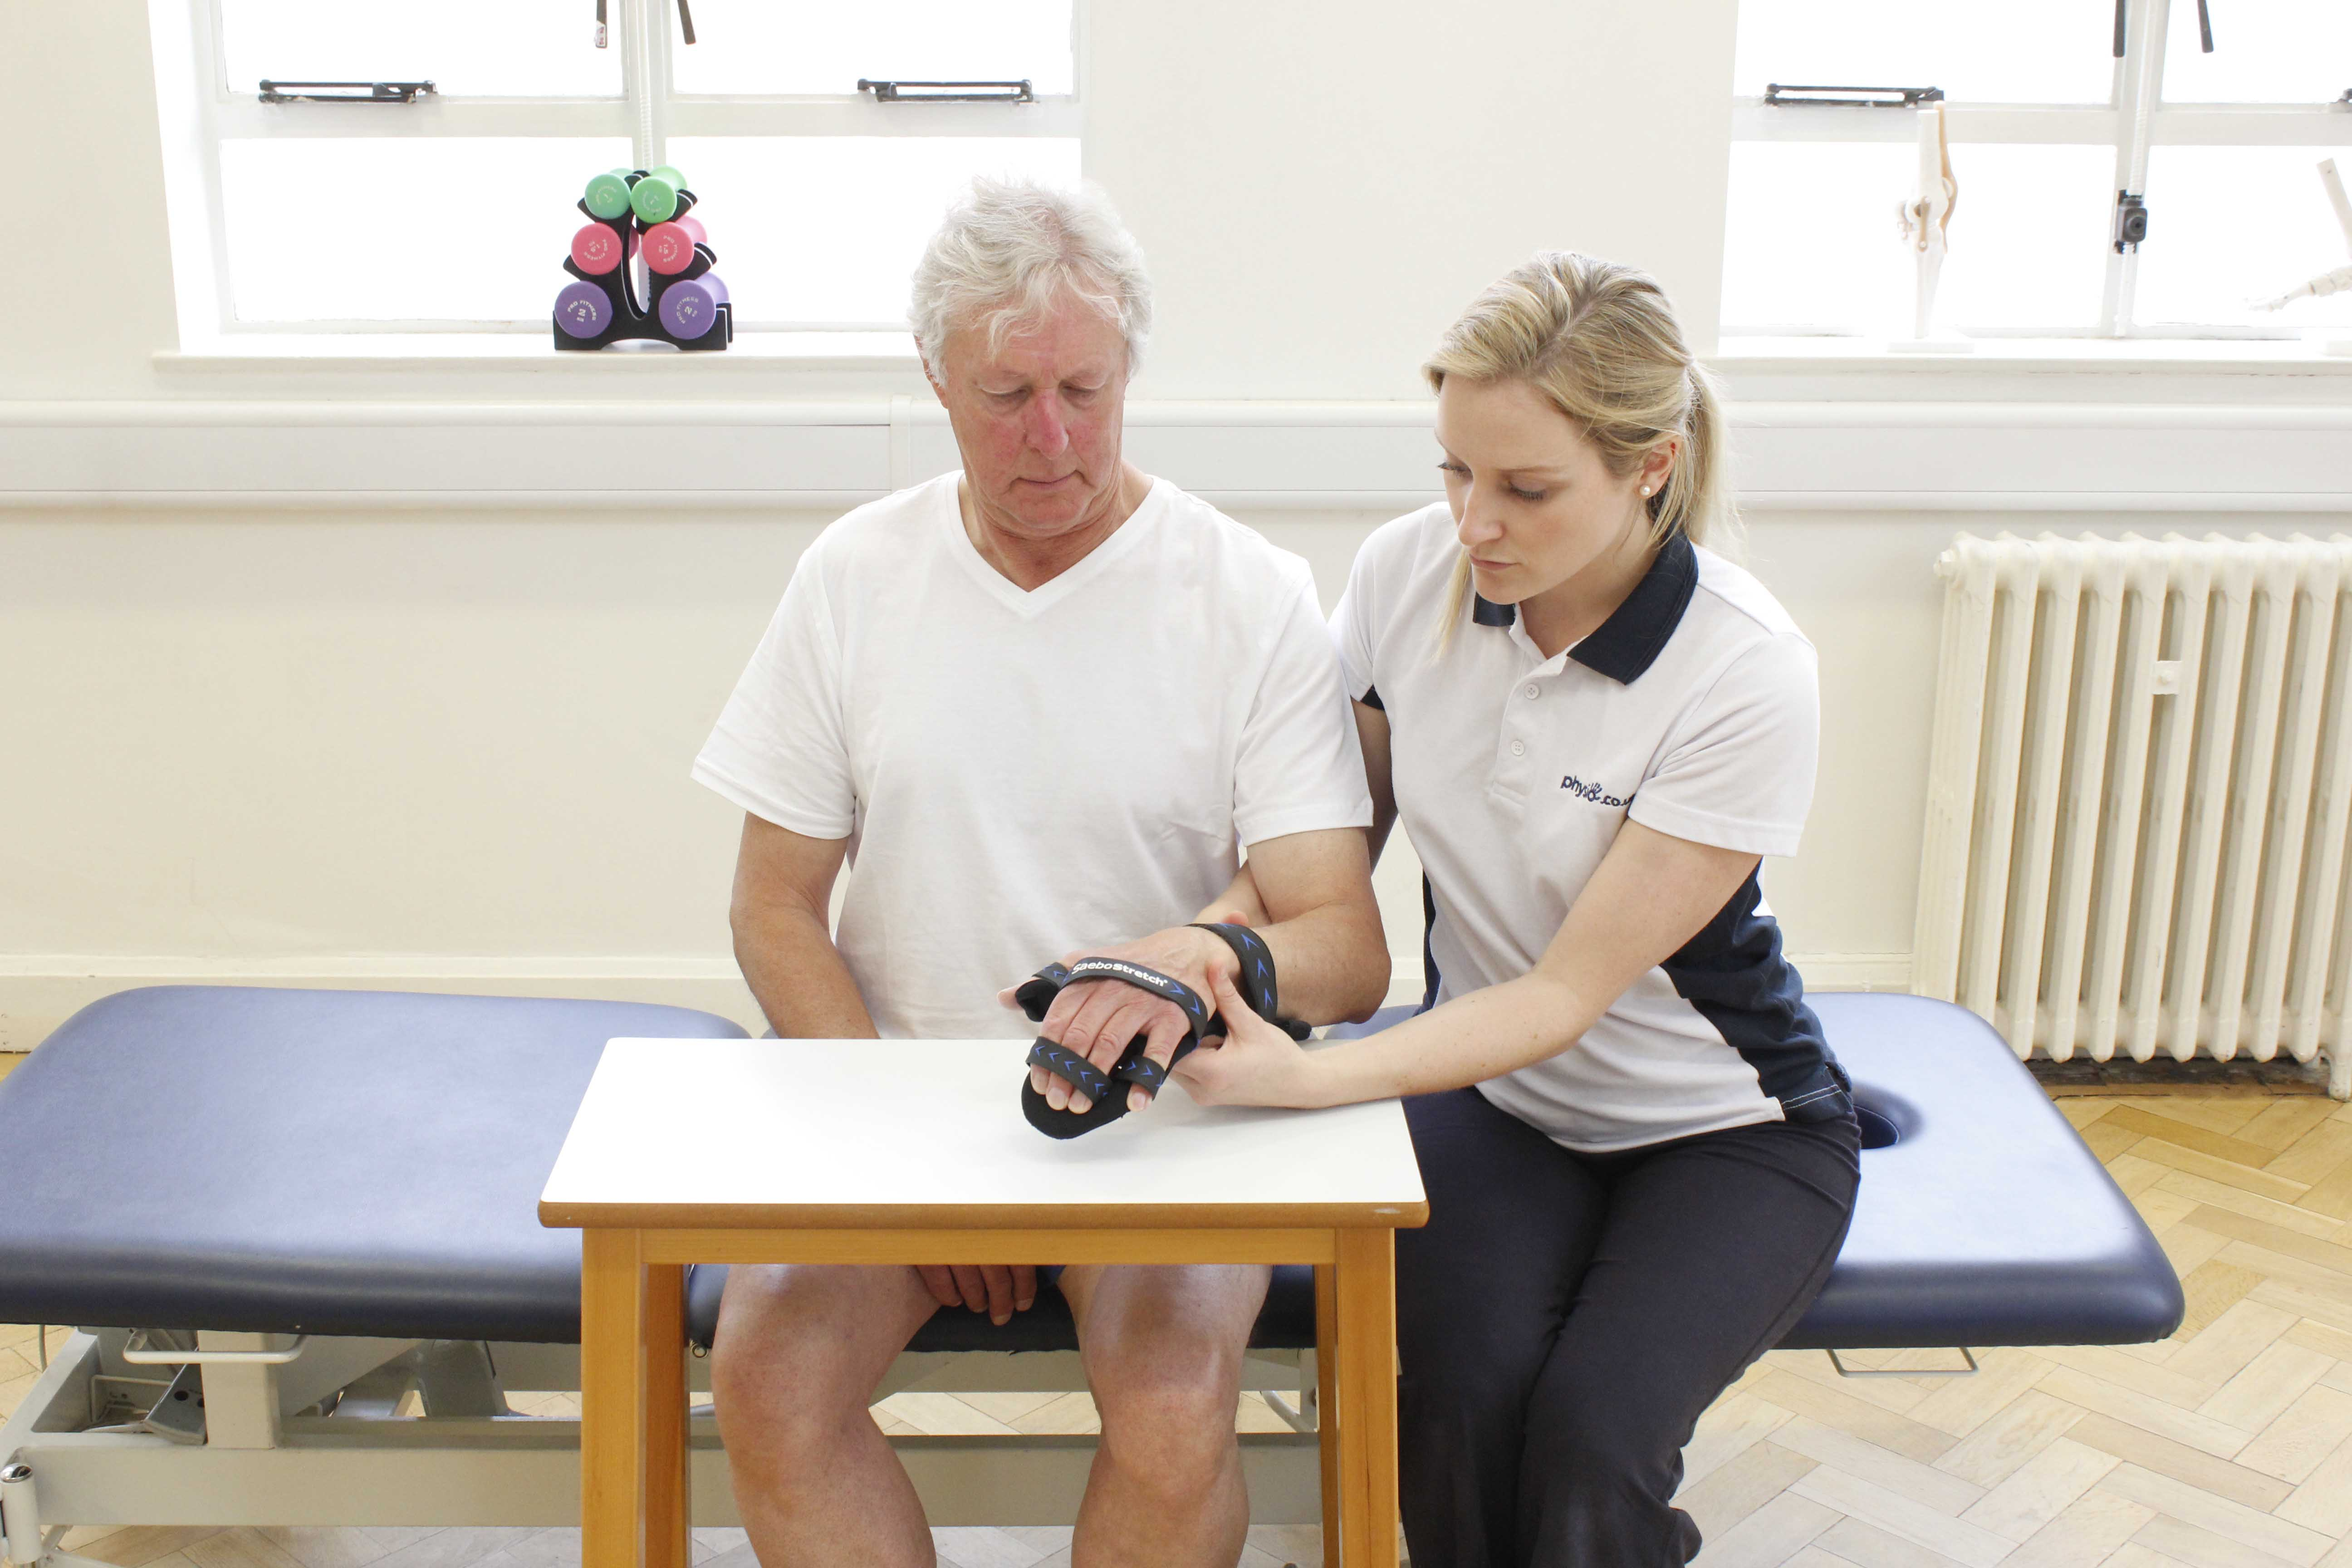 Physiotherapist fitting a wrist splint to prevent muscle and soft tissue shortening in an imobile